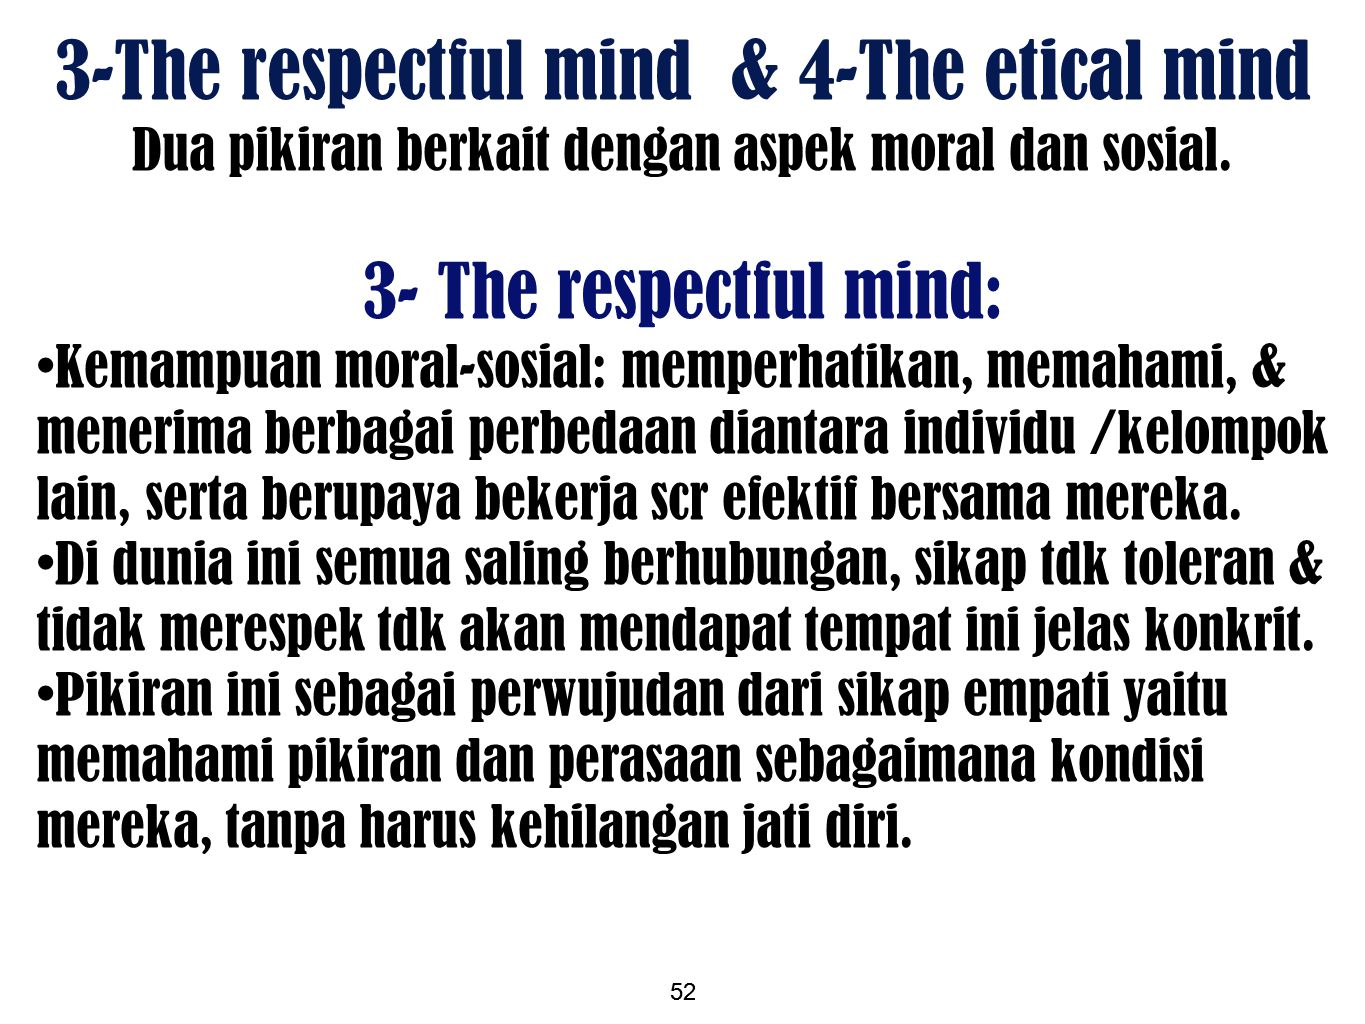 3-The respectful mind & 4-The etical mind